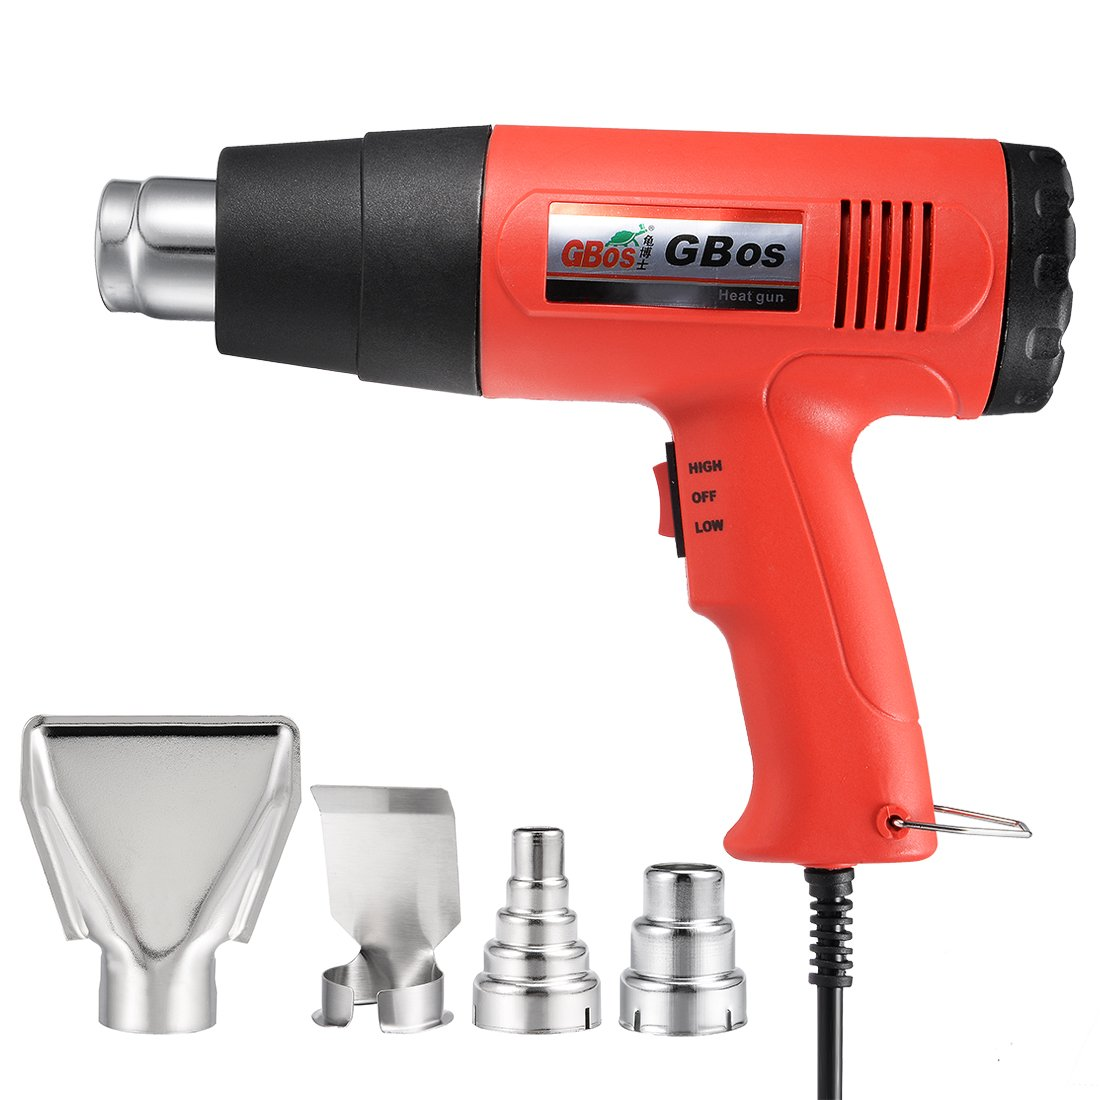 uxcell BOS-882 Professional Heat Gun 1500W 110V with 1022℉/572℉ Dual Temperature Settings Four Nozzle Attachments (Red) by uxcell